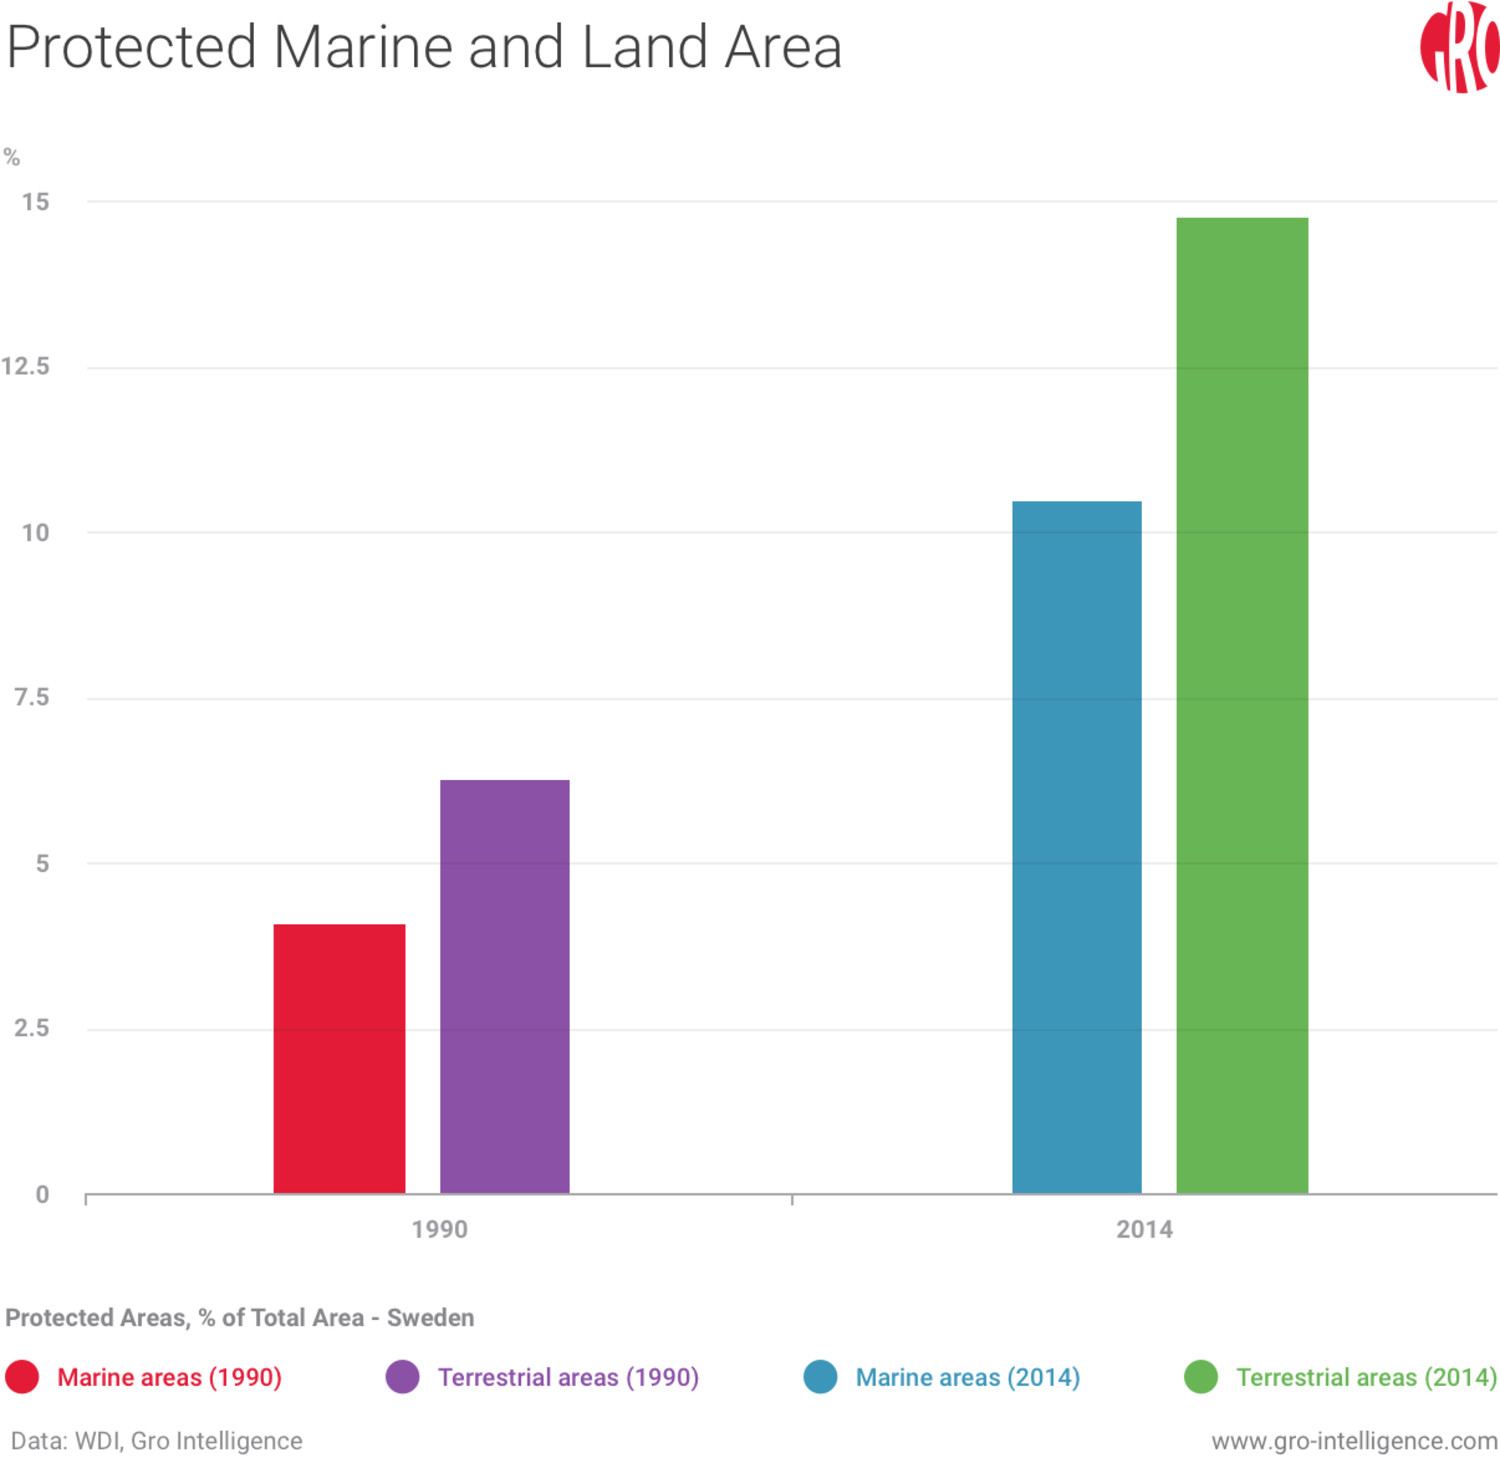 Protected Marine and Land Area